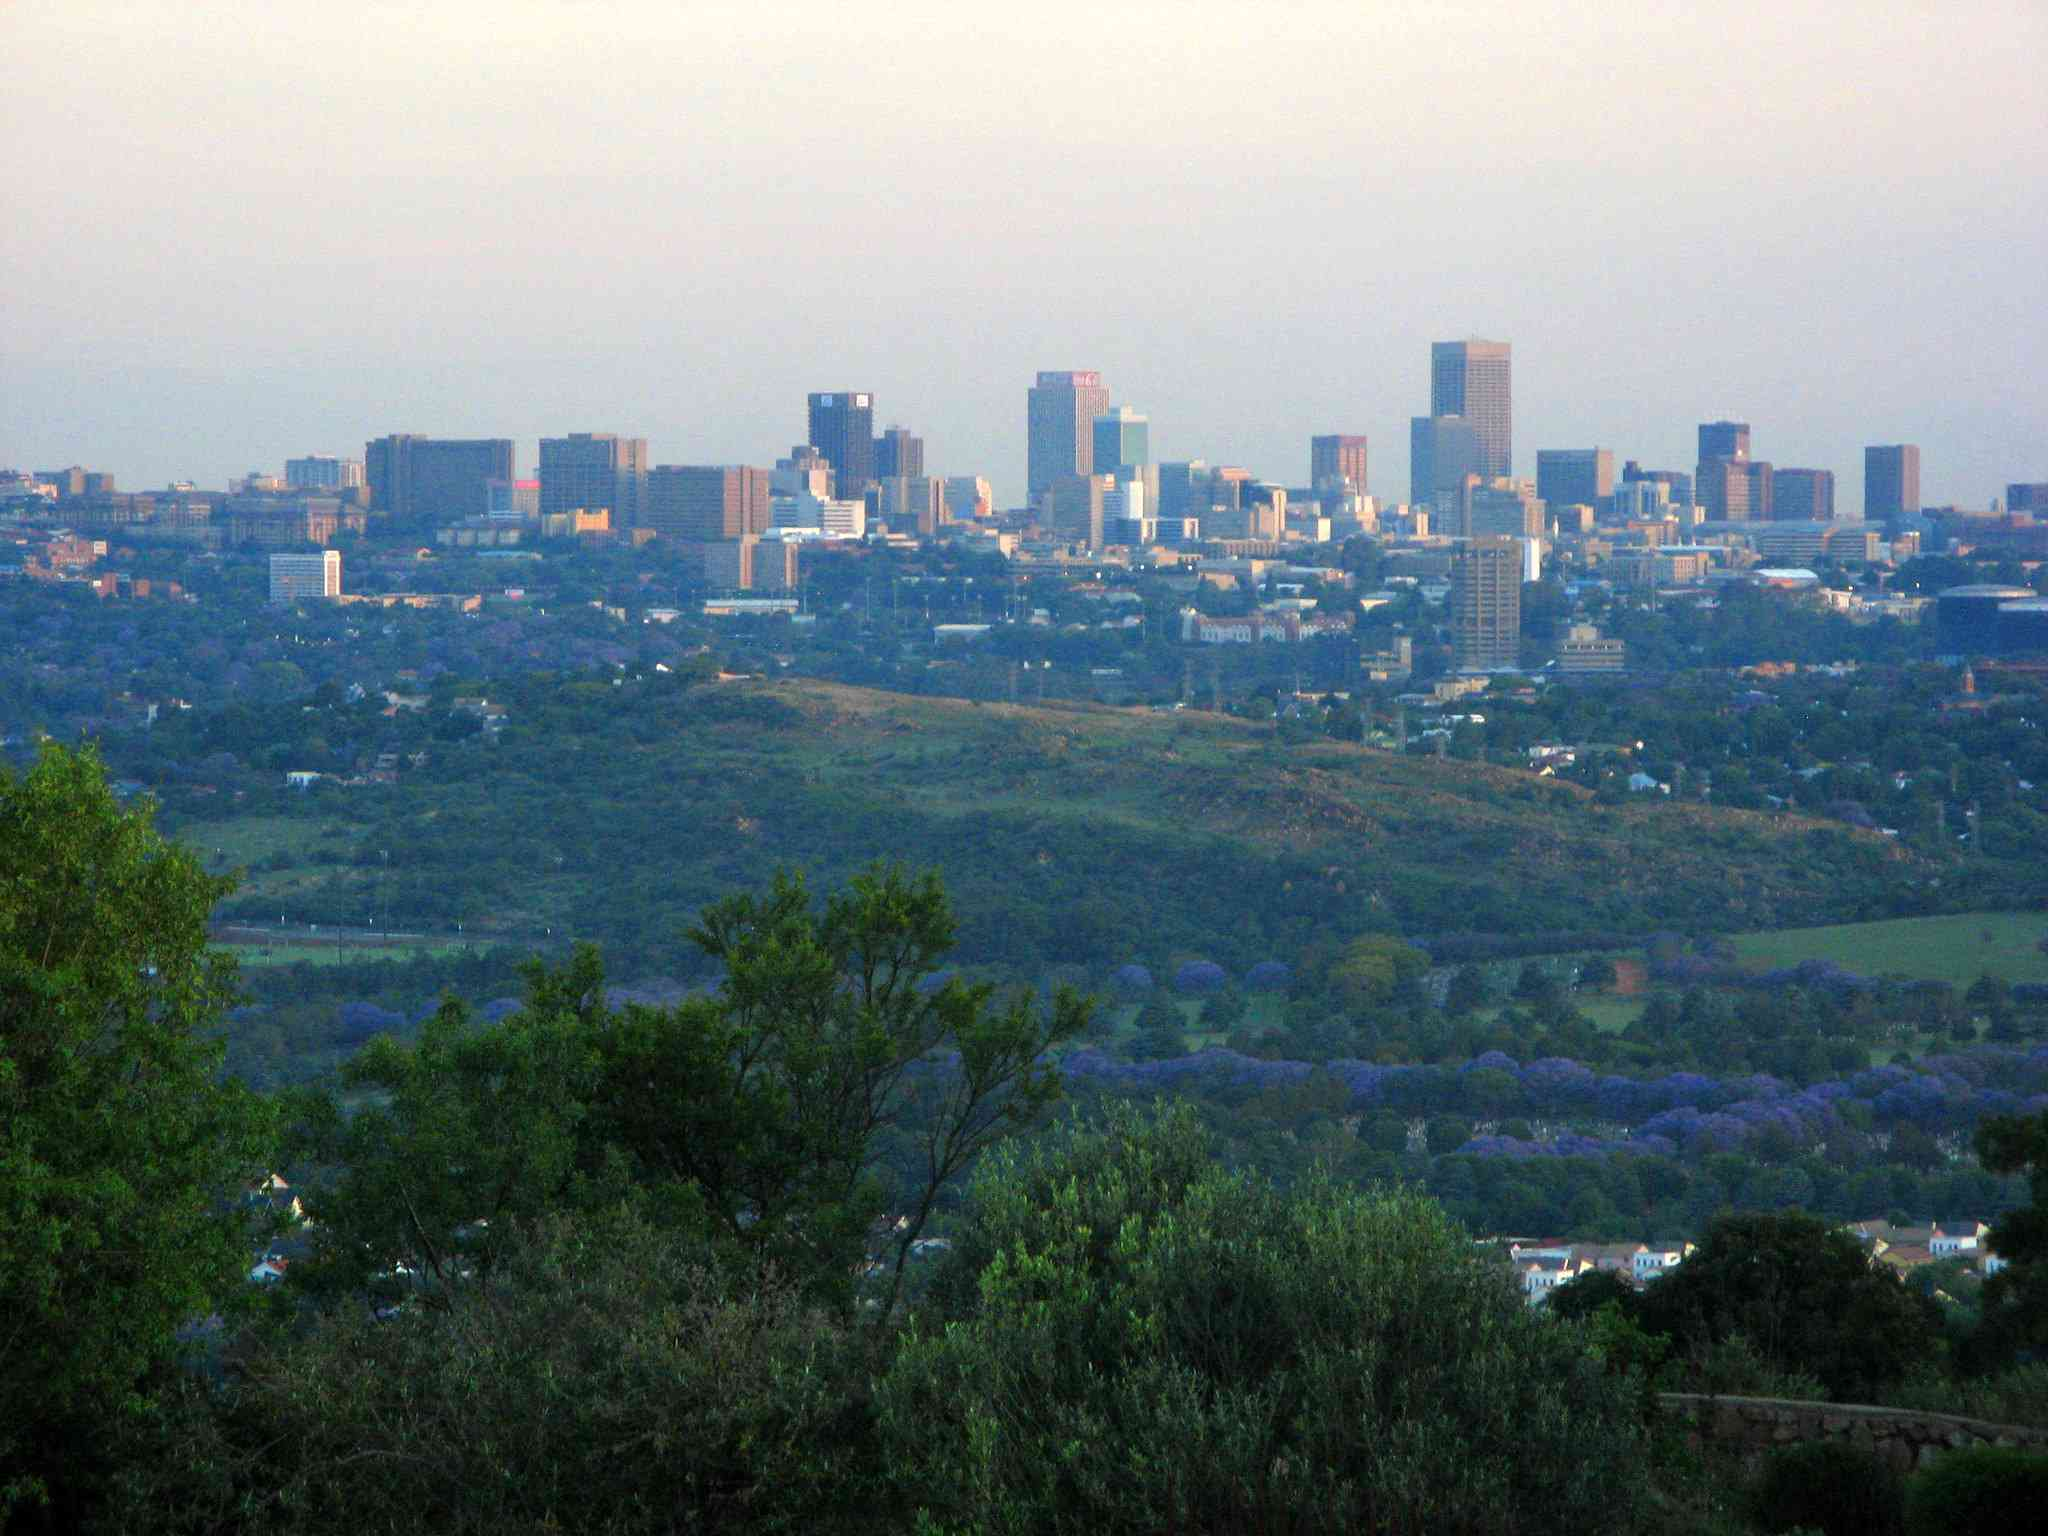 Looking towards the CBD (Central Business District), with the Melville Koppies nature reserve in the middle. Lines of Jacarandas visible too.